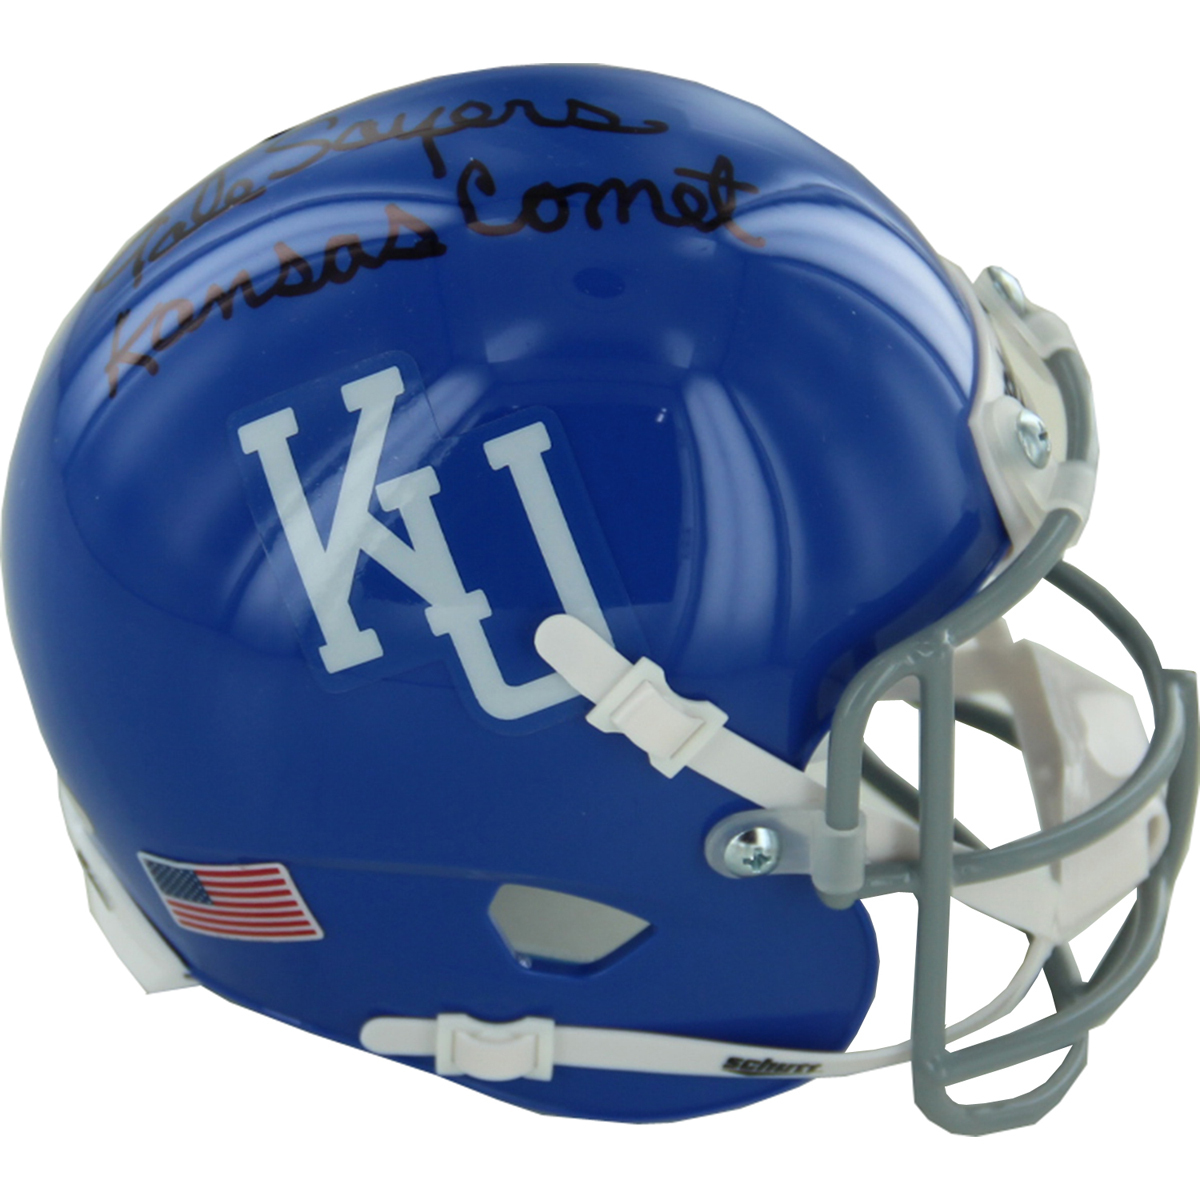 Steiner Sports sells this autographed and inscribed Gayle Sayers University of Kansas helmet here. Photo courtesy of Steiner Sports.